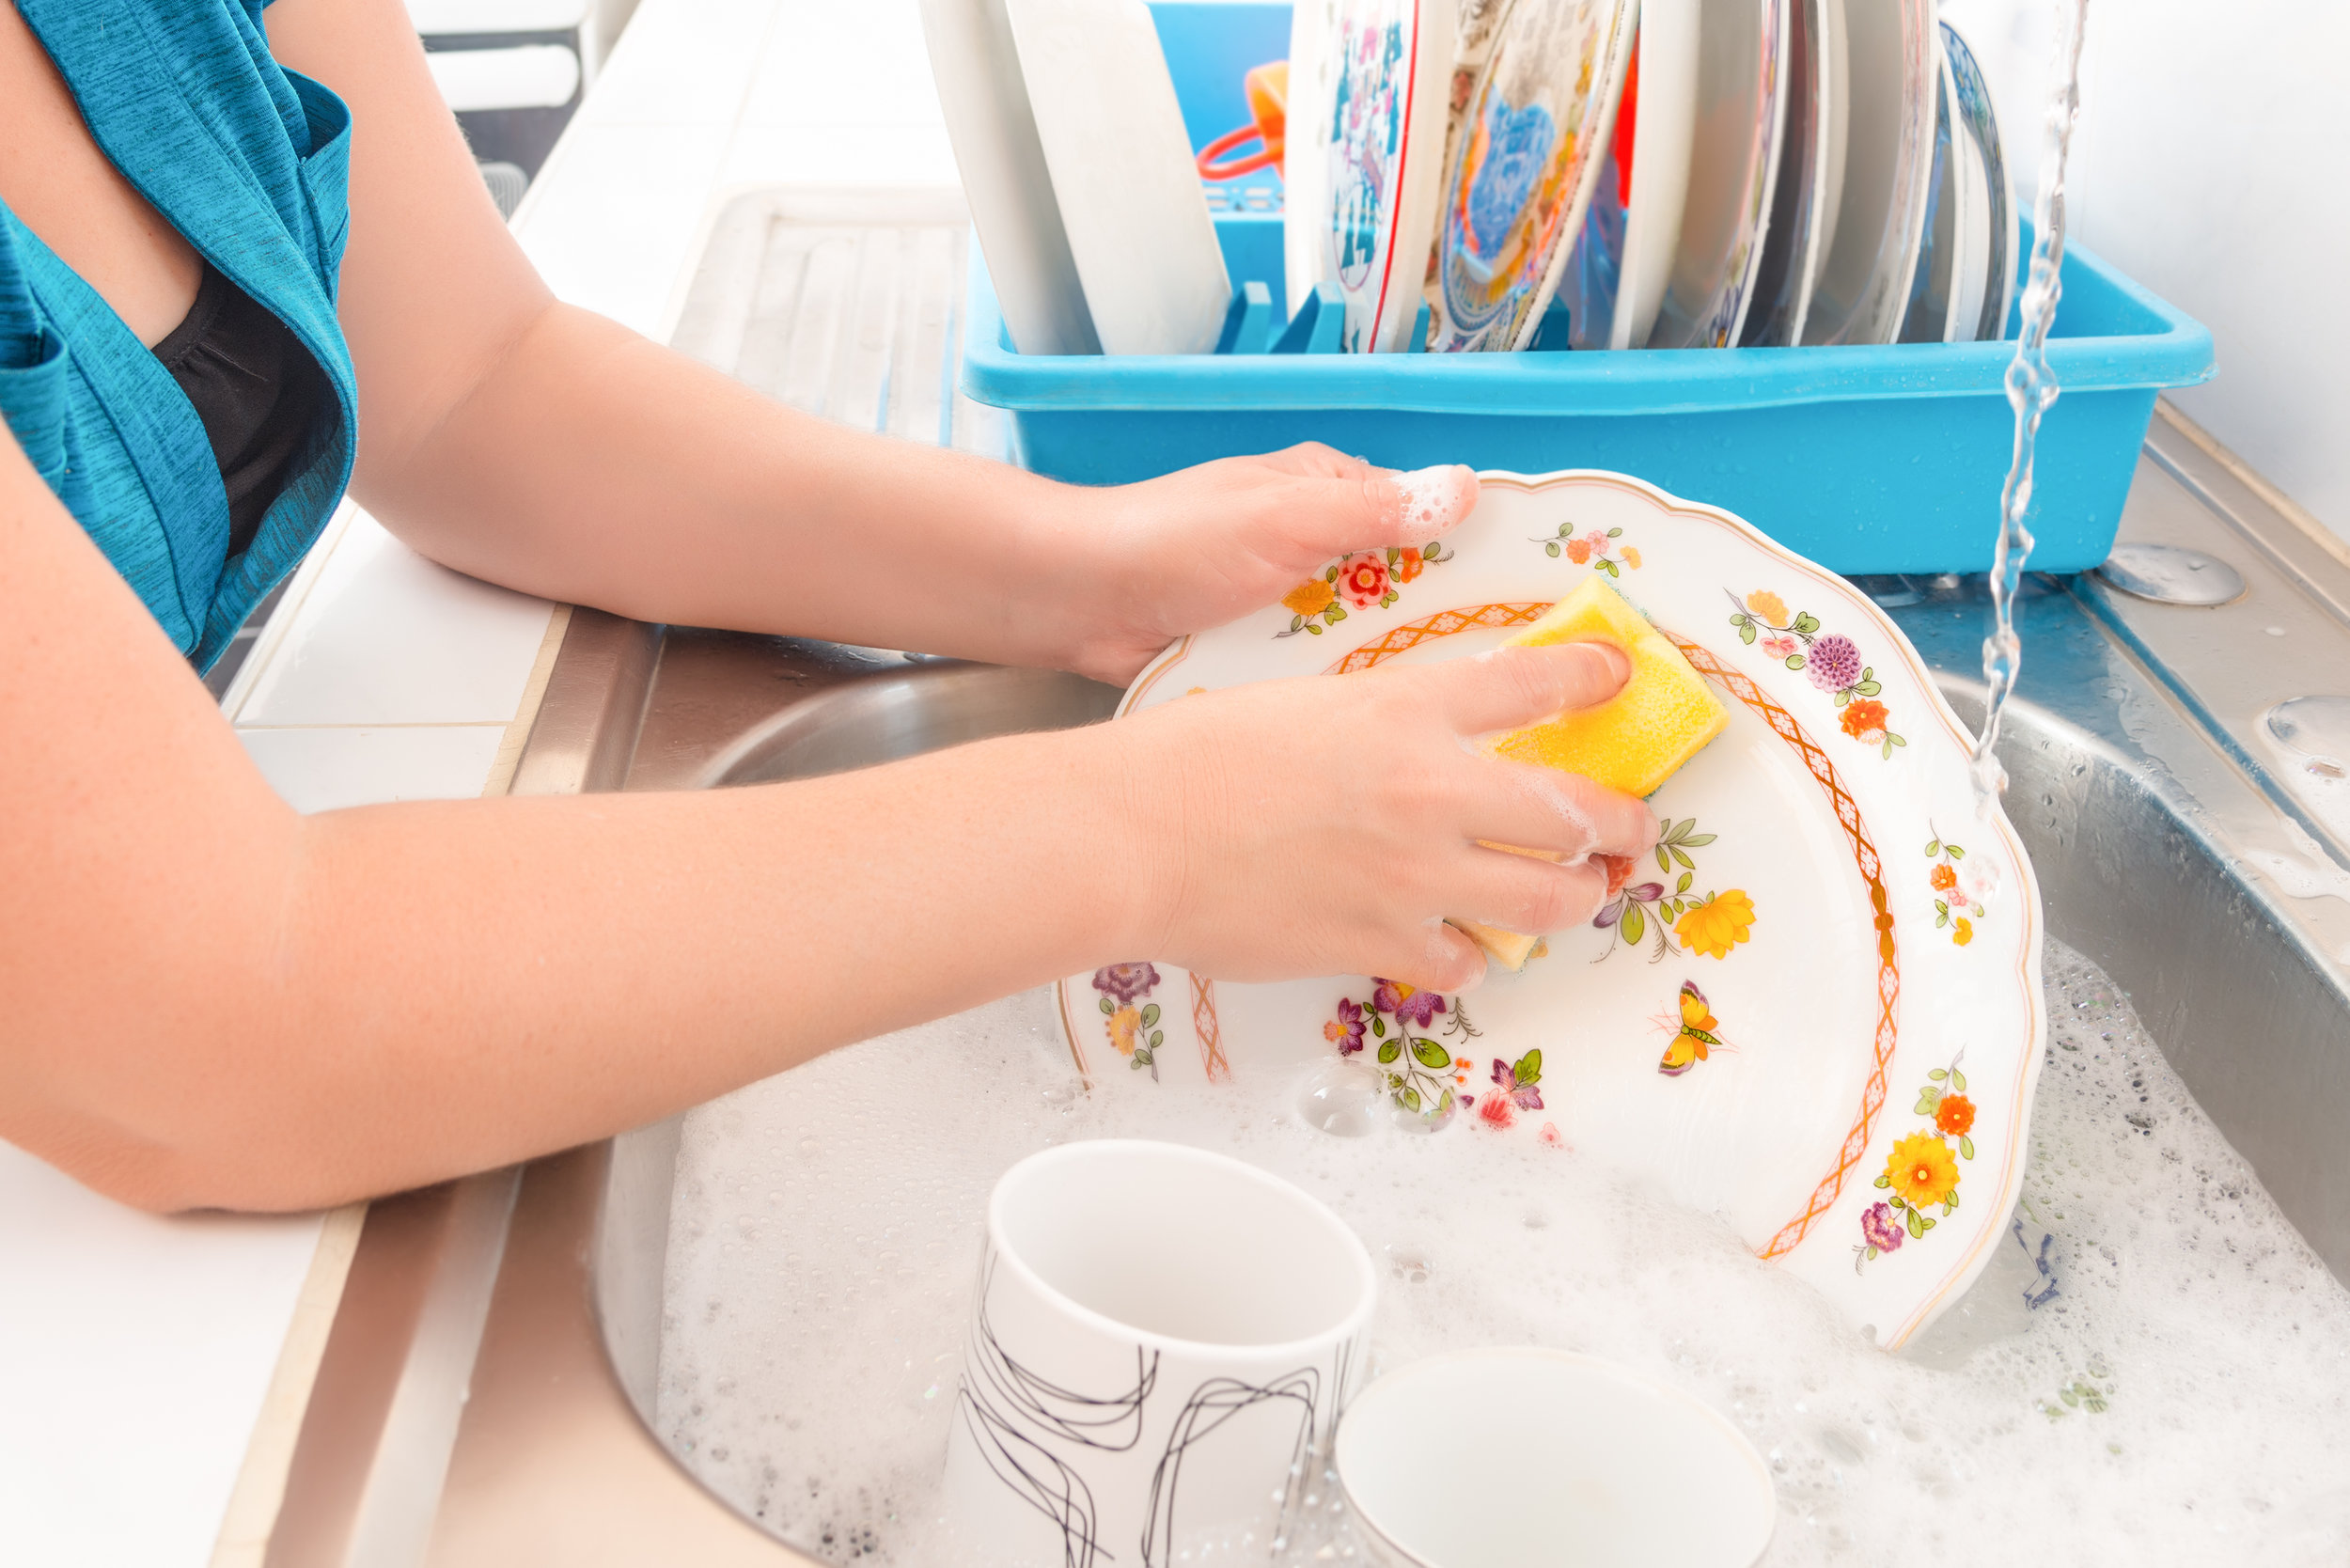 Wash your dishes by hand once or twice a week. - Do you know how much water your dishwasher uses? I'm willing to bet that it's a lot of water, even if you have an energy-saving model. Washing your dishes by hand may take a bit more time and effort, but it'll save gallons upon gallons of water in the long run.